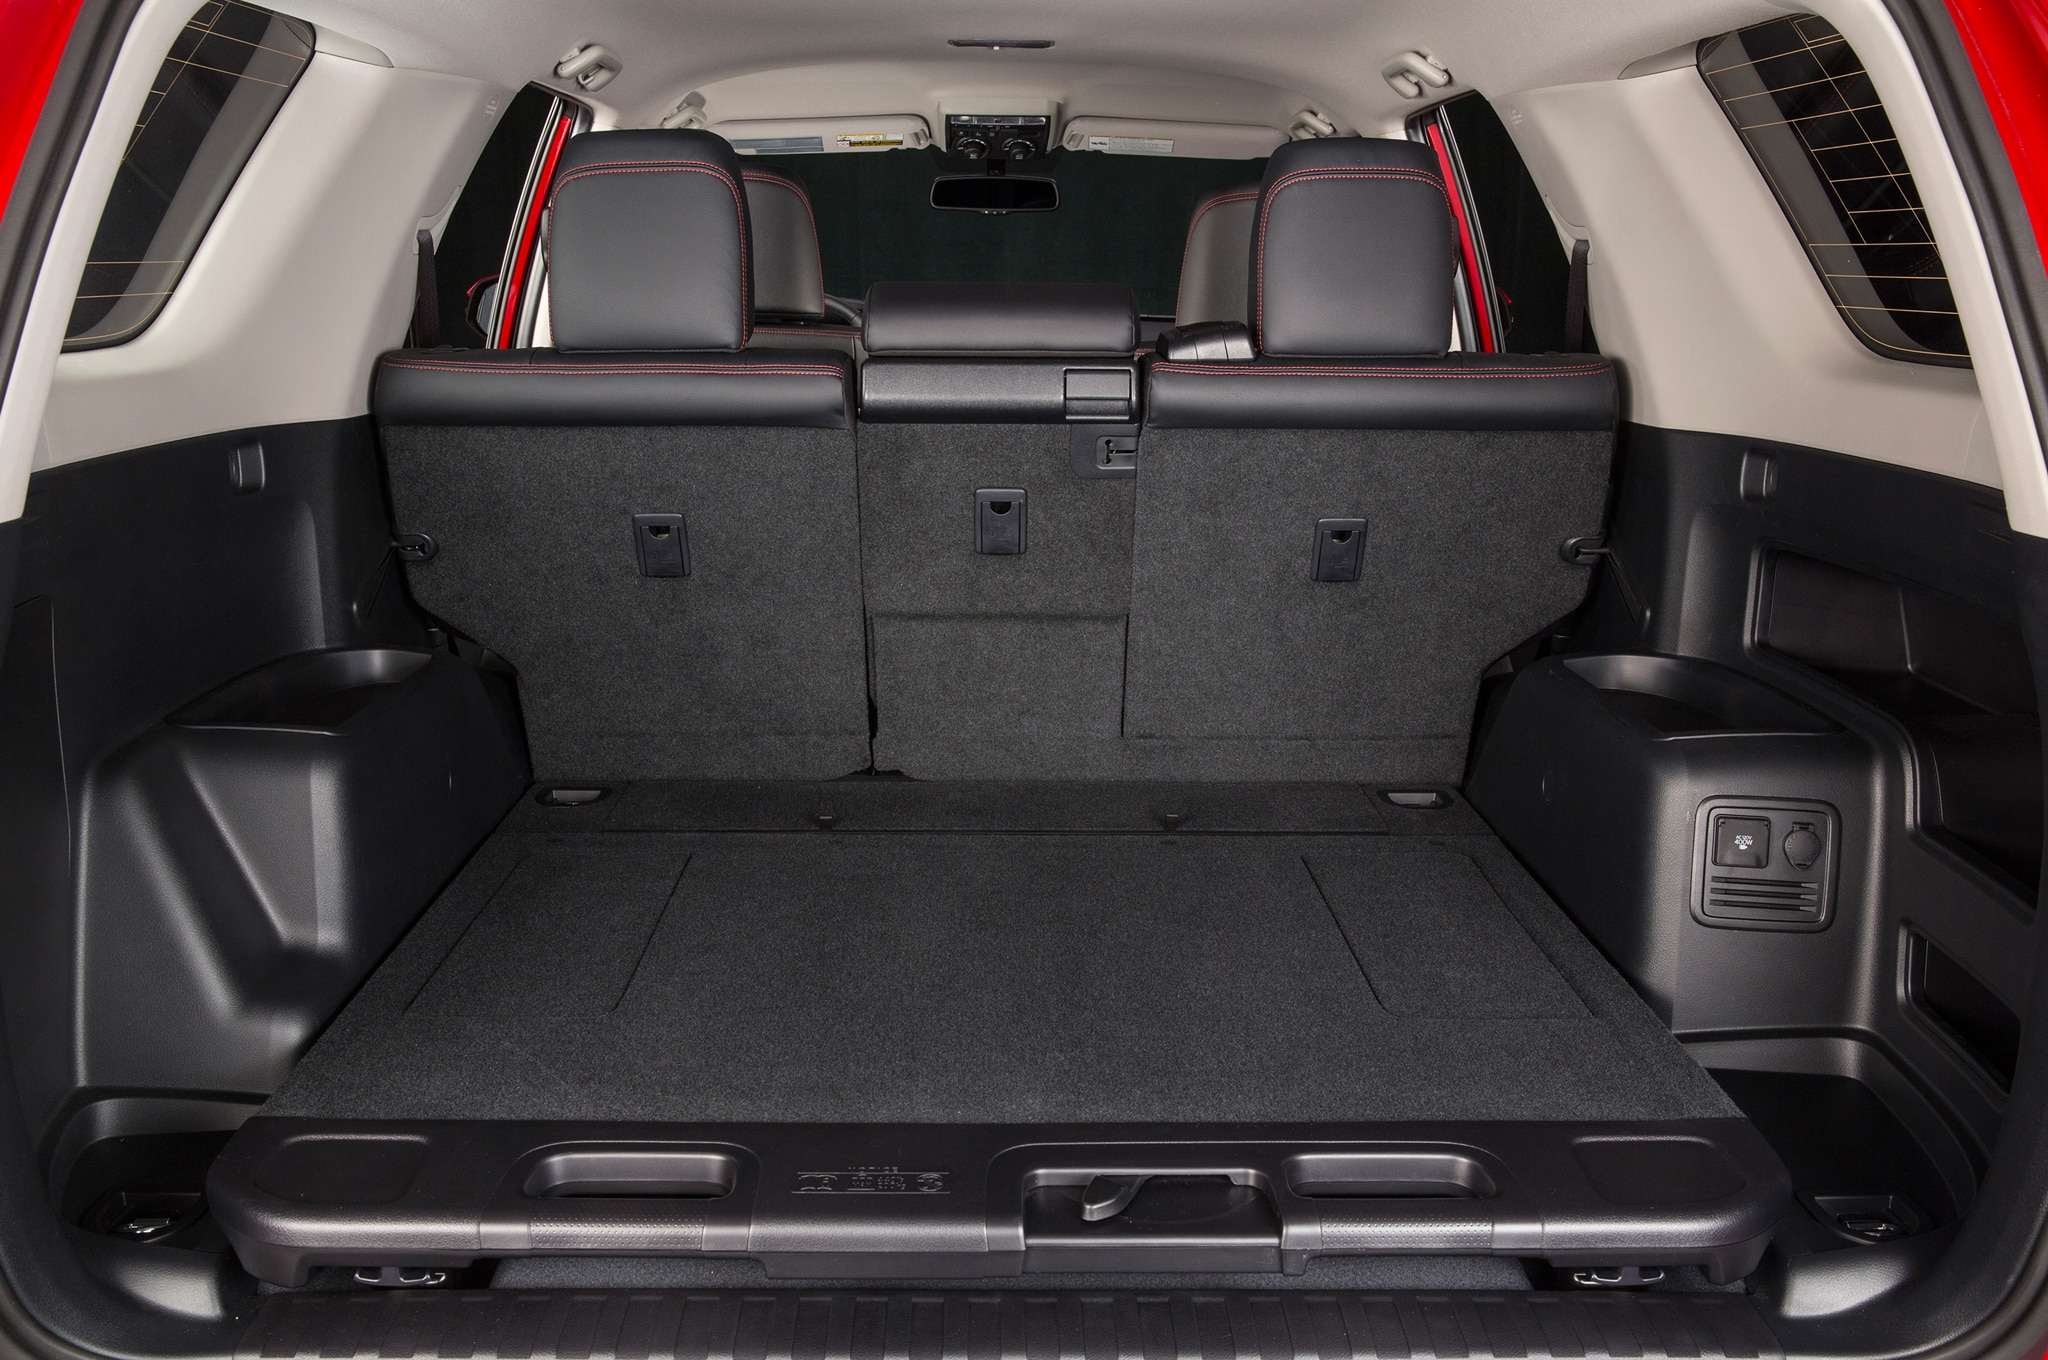 2014 Toyota 4runner Trail rear interior cargo space 02